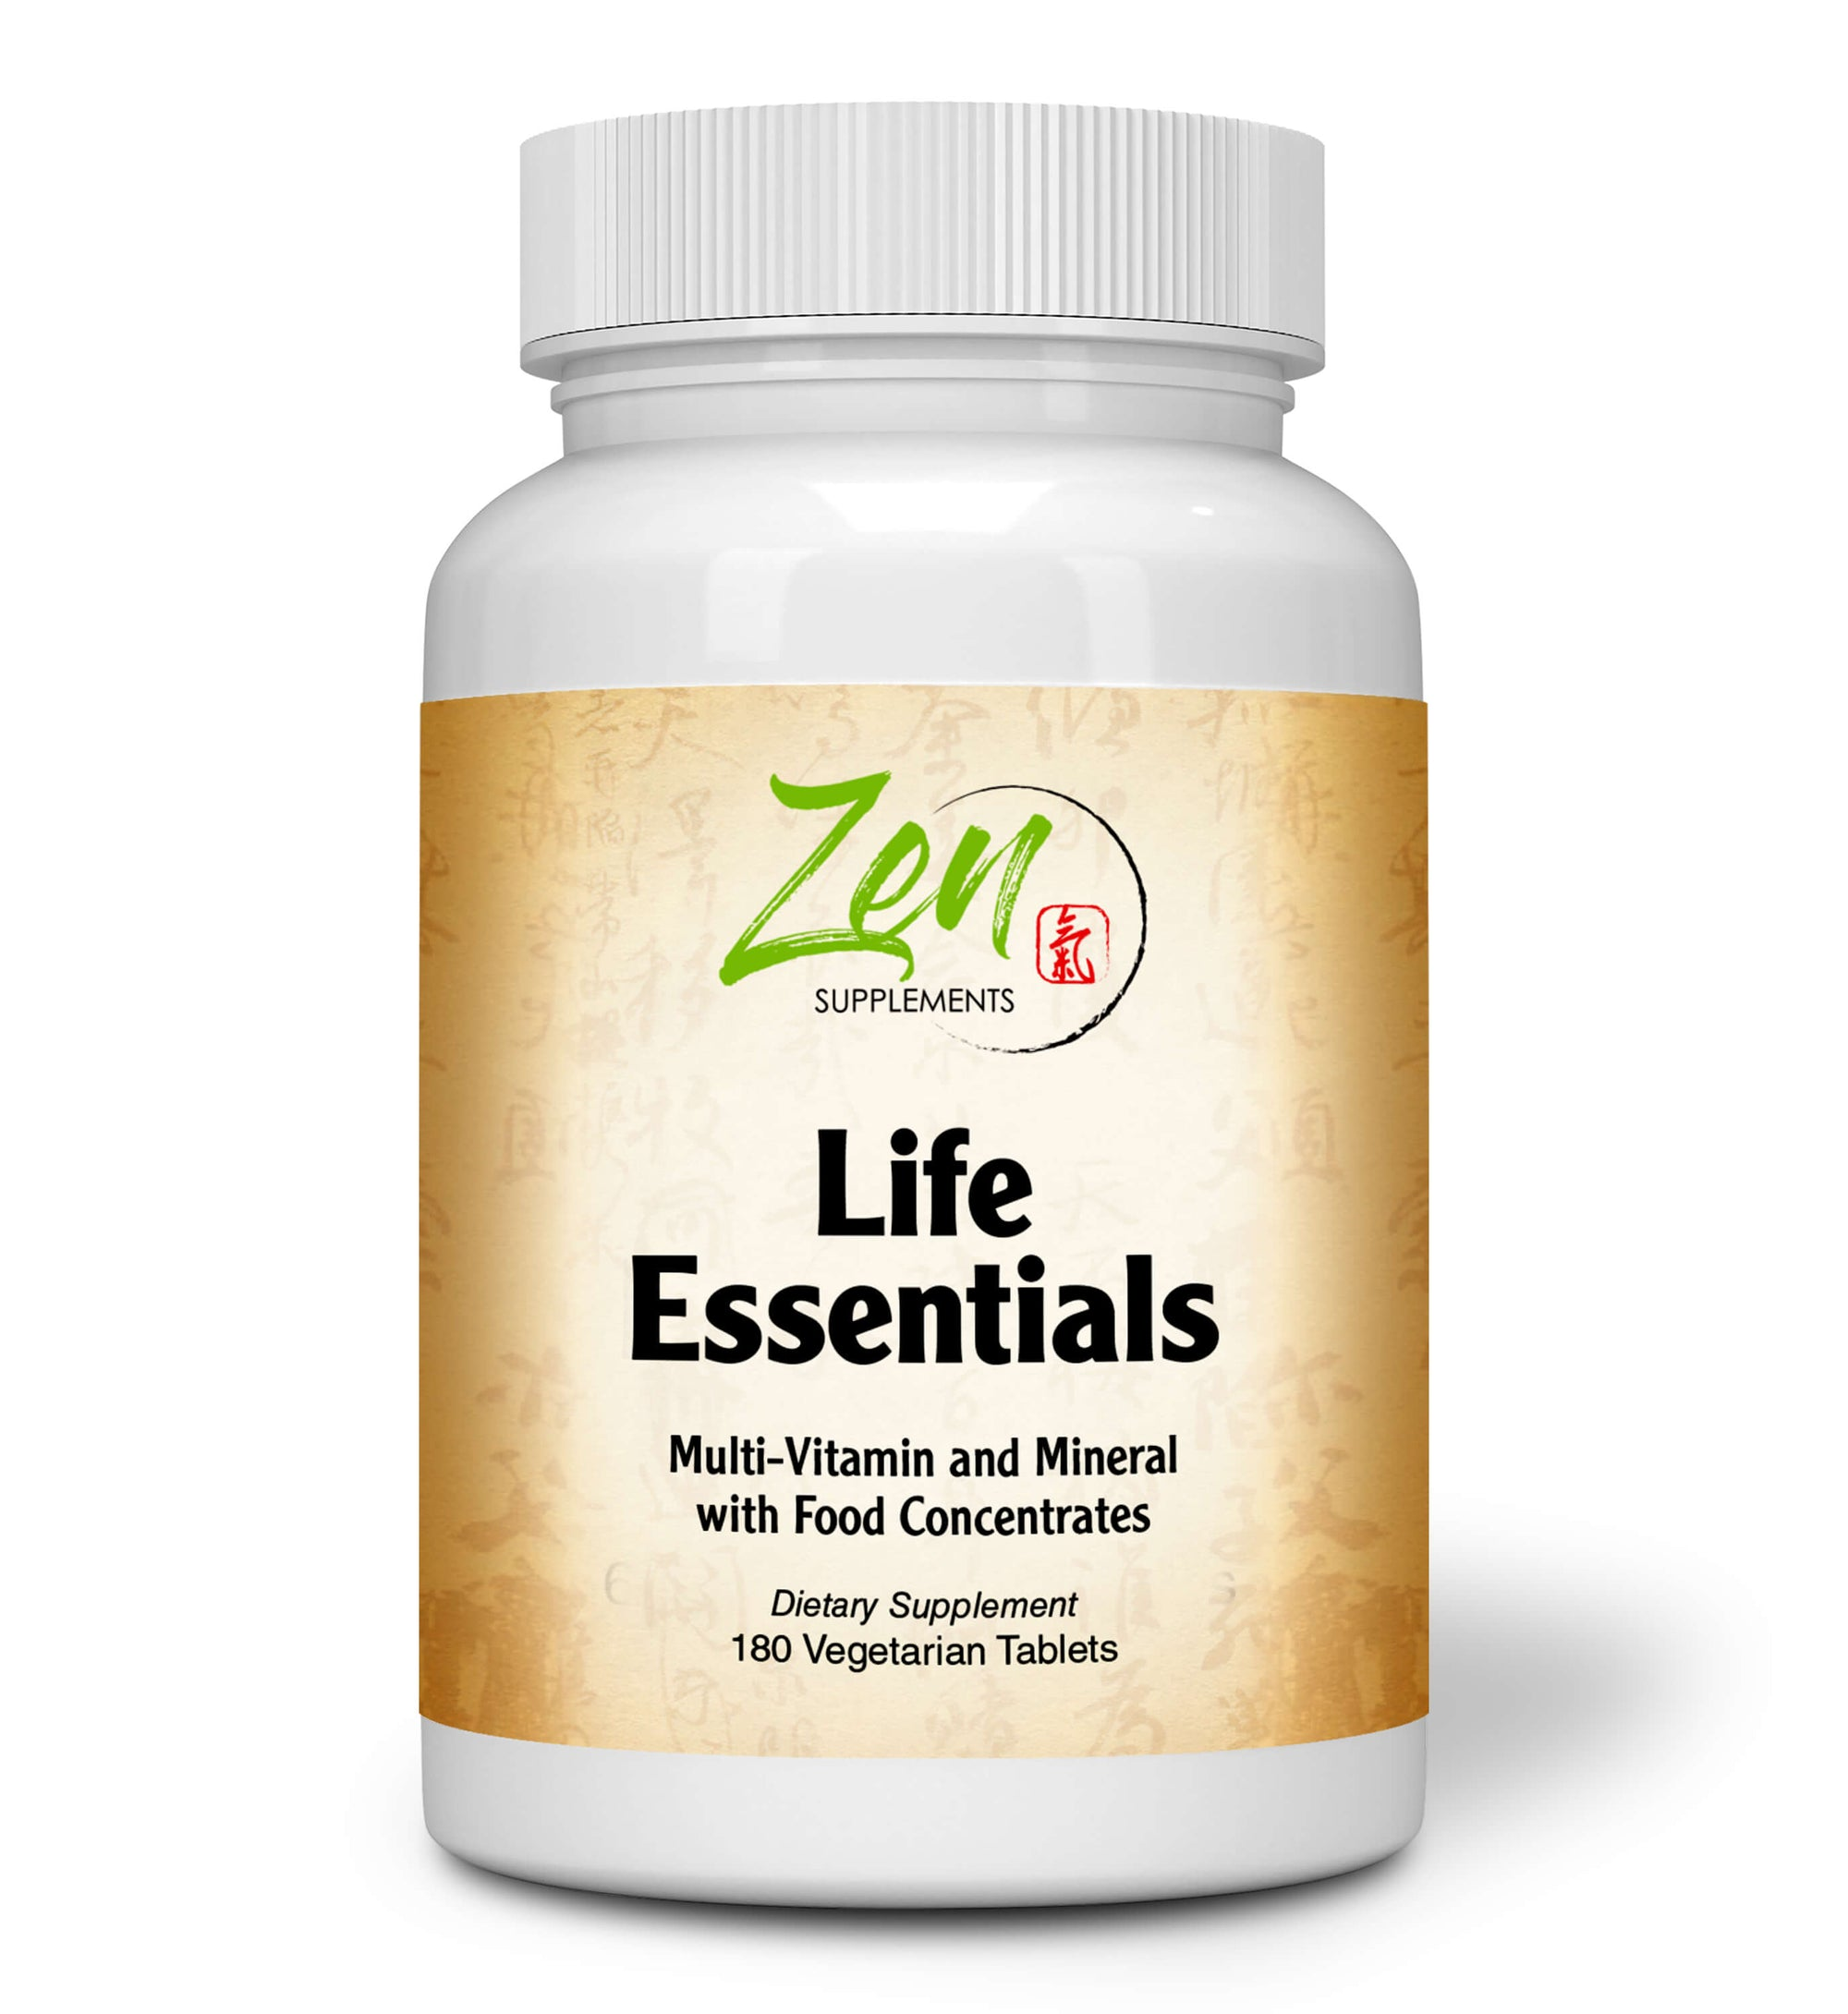 Life Essentials Whole-Foods Multi-Vitamin - With Probiotics & Digestive Enzymes - 180 Tabs